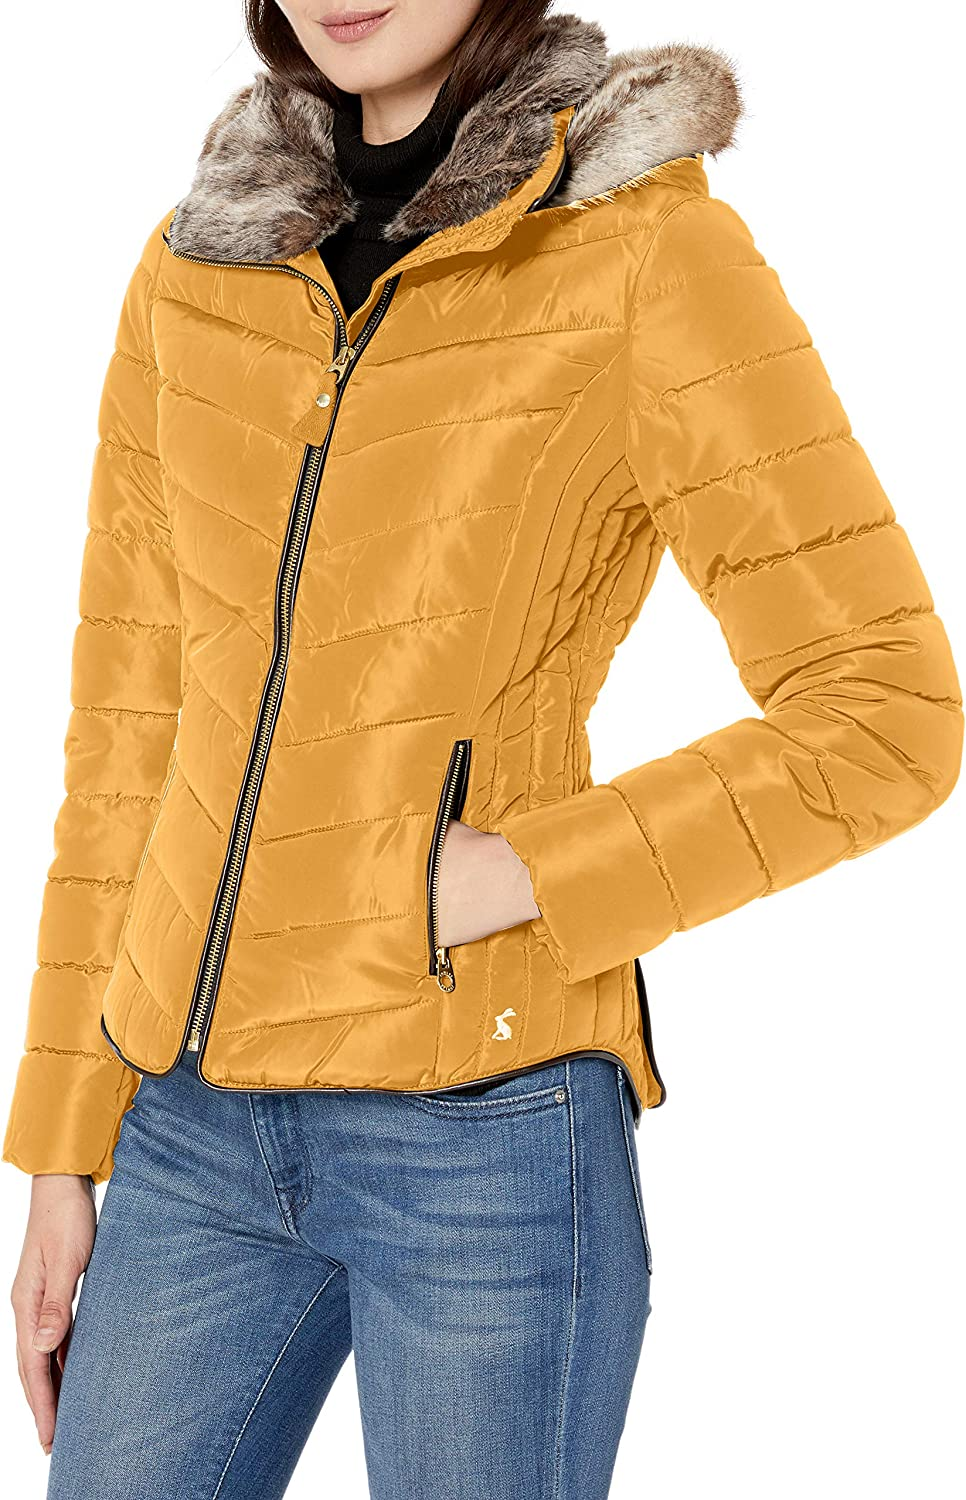 store Joules Outerwear High material Women's Gosway